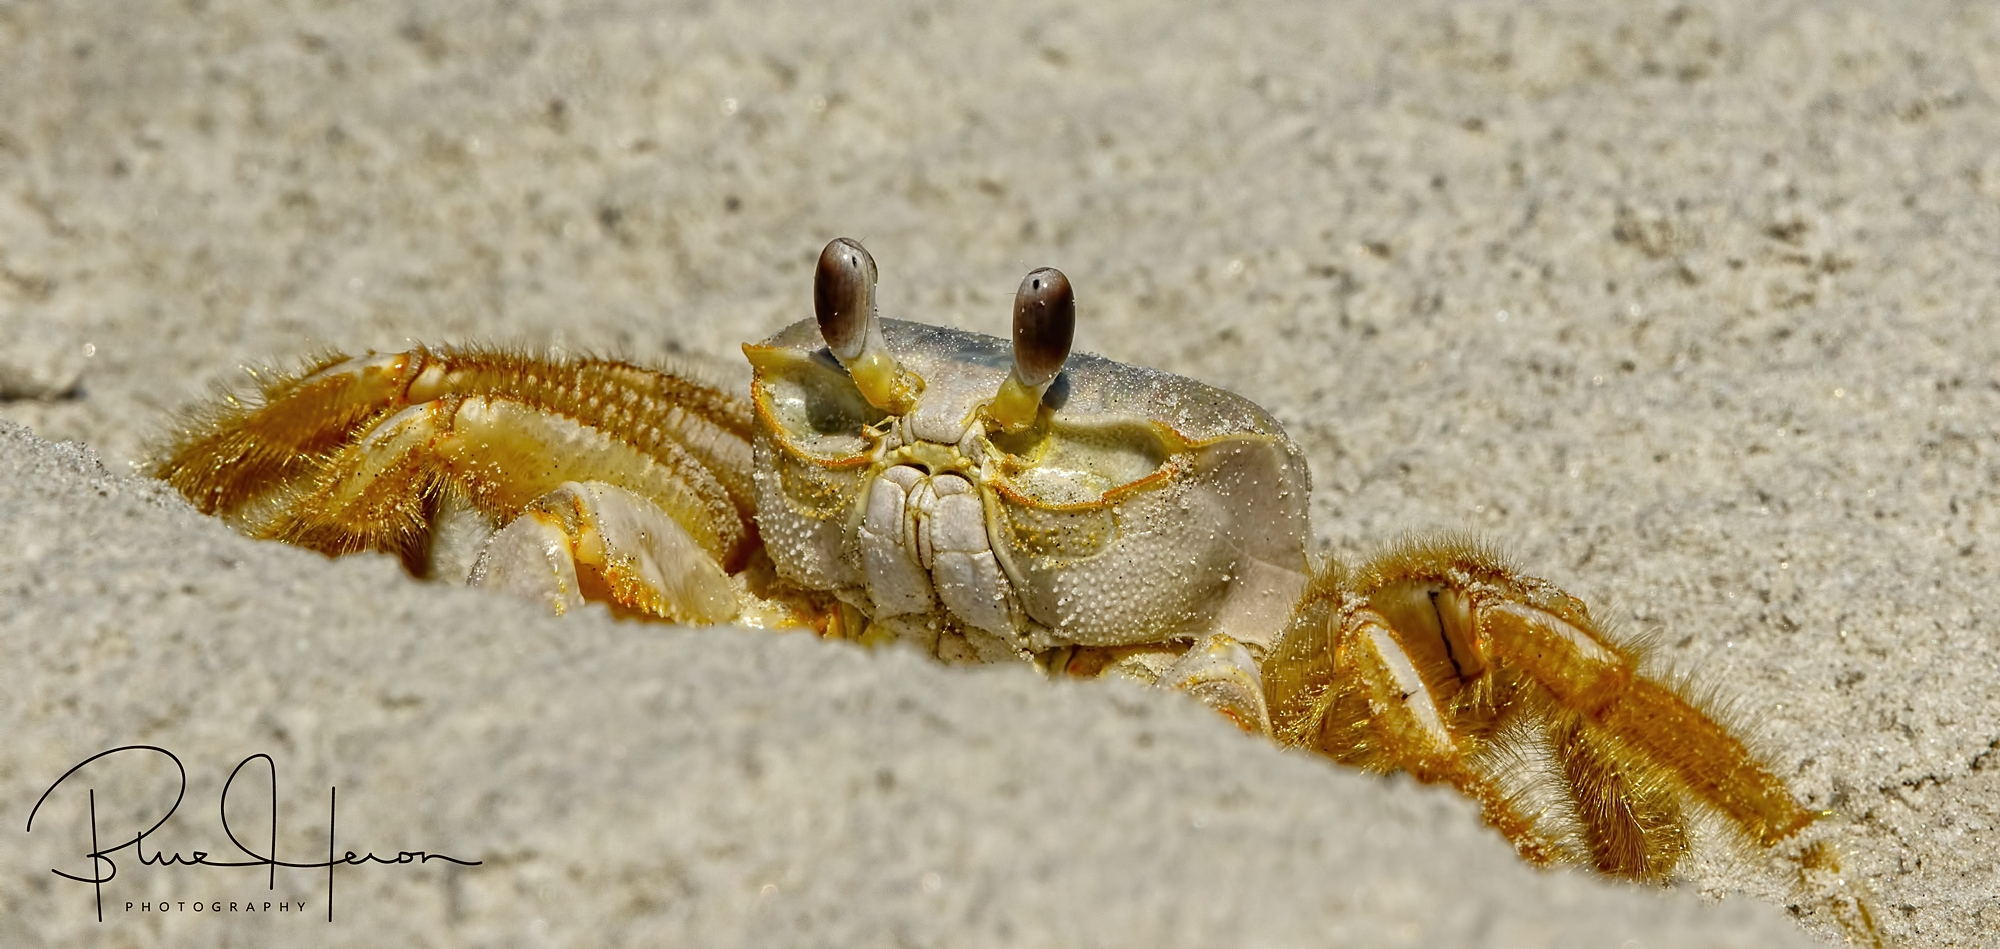 I see you there Mr. Doohickey...Ghost Crab looking to attack a hatchling..